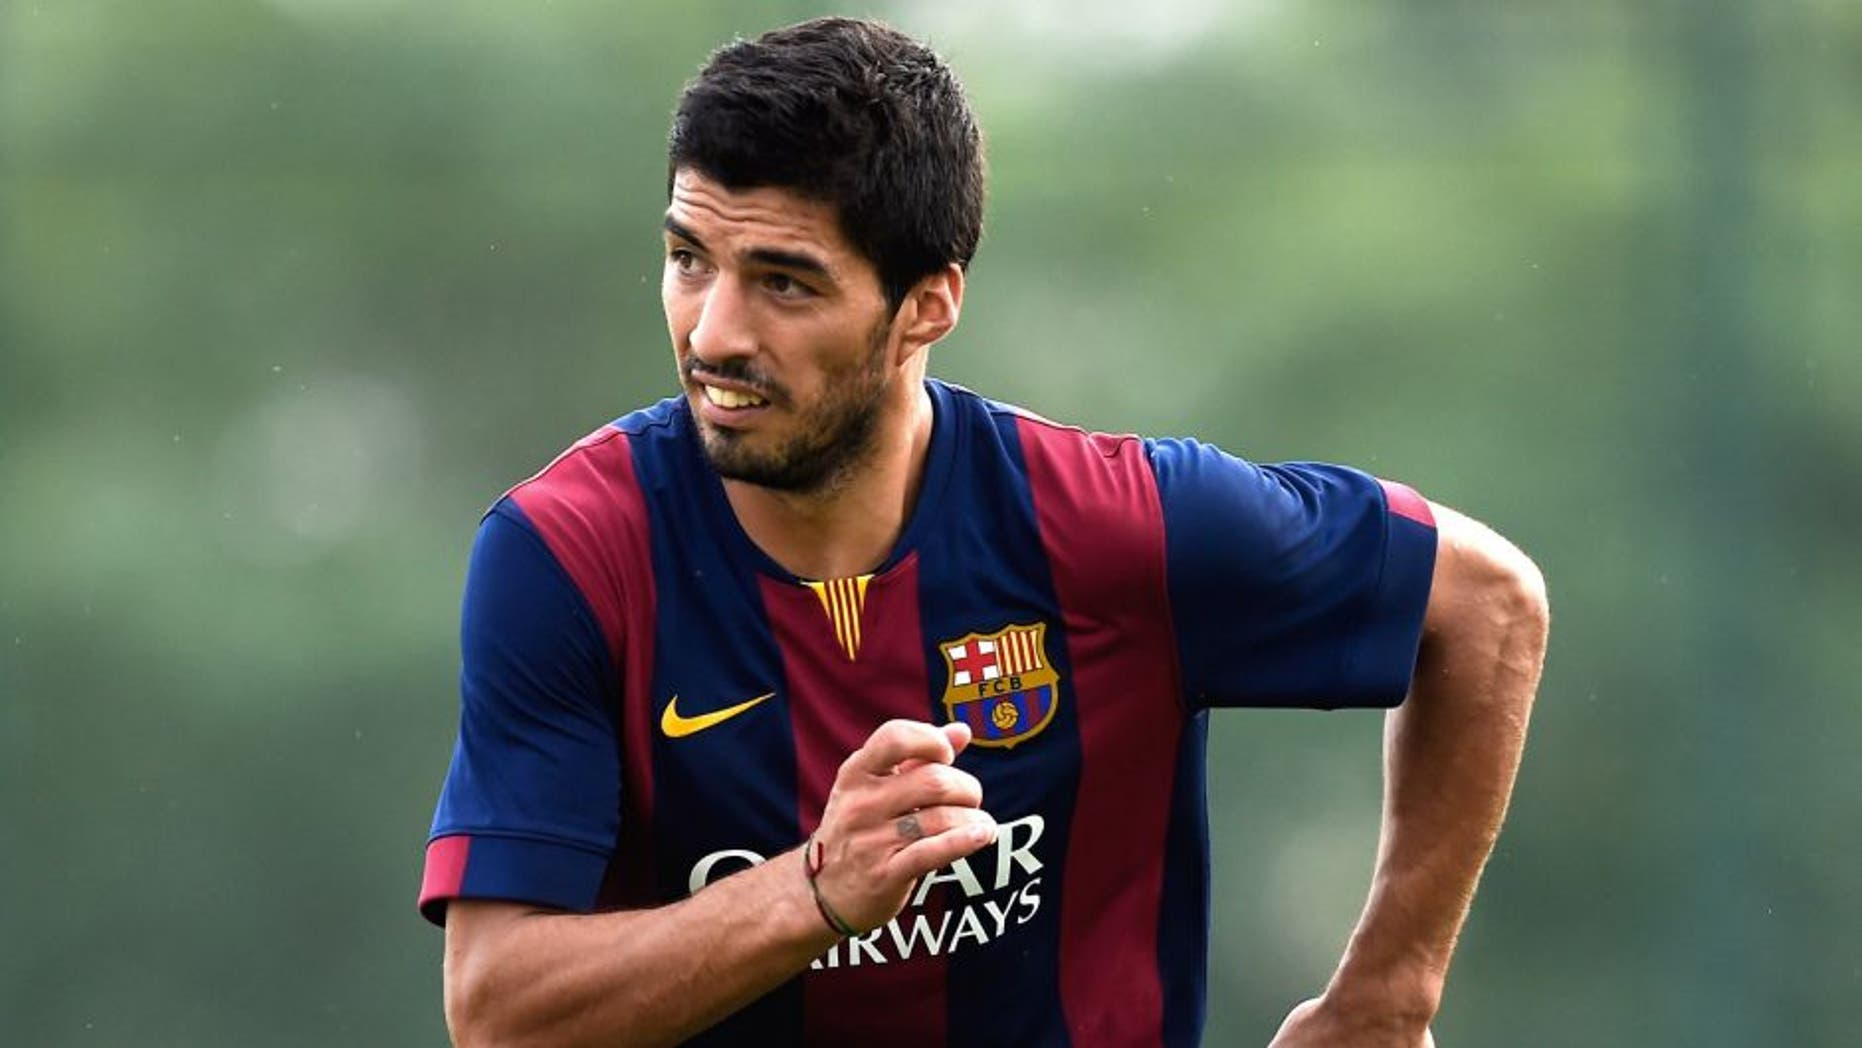 BARCELONA, SPAIN - SEPTEMBER 24: Luis Suarez of FC Barcelona looks on during a friendly match between FC Barcelona B and Indonesia U19 at Ciutat Esportiva on September 24, 2014 in Barcelona, Spain. (Photo by David Ramos/Getty Images)